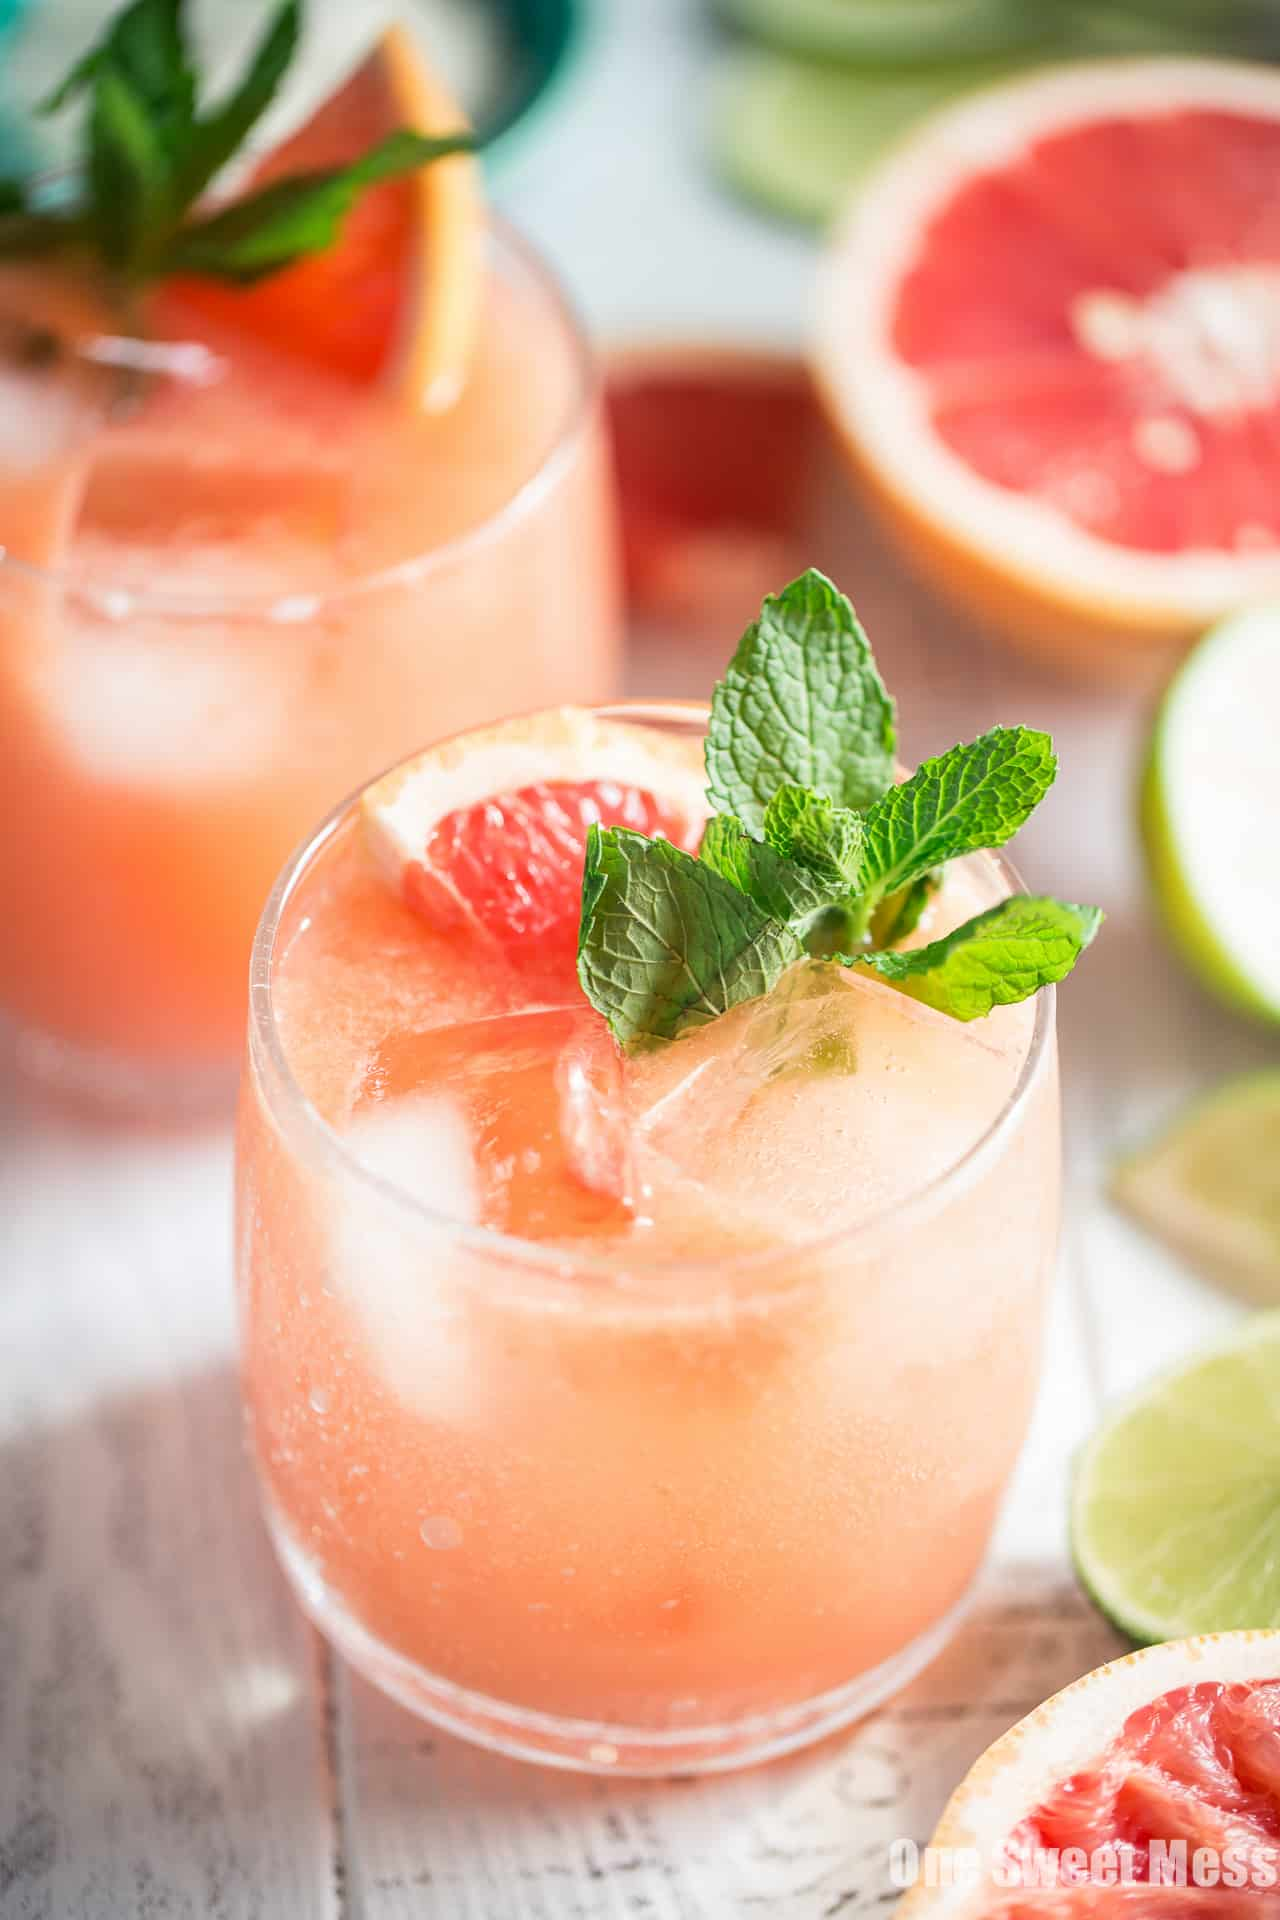 Paloma Cocktail: This citrus infused, tequila-spiked cocktail is deliciously satisfying.